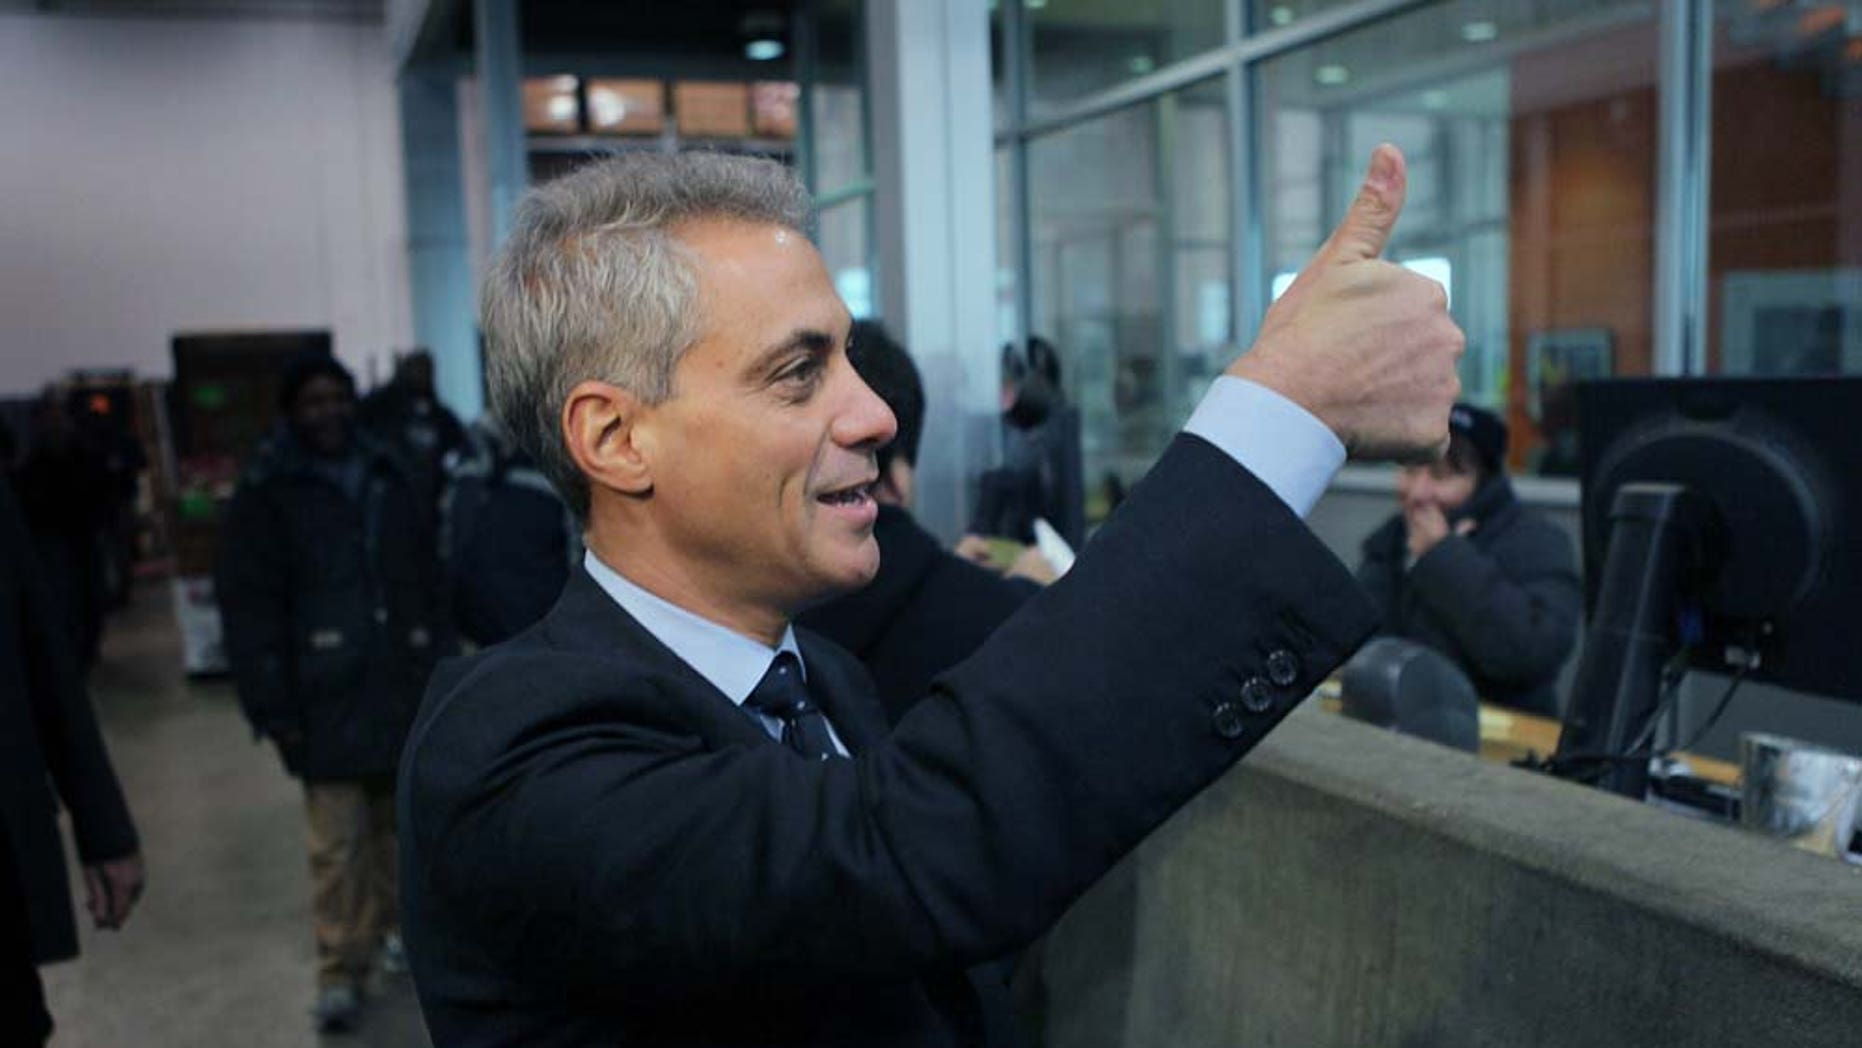 CHICAGO, IL - JANUARY 25:  Mayoral candidate and former White House Chief of Staff Rahm Emanuel gives teh thumbs up at a produce distribution warehouse where he received the endorsement of Teamsters Joint Council 25 on January 25, 2011 in Chicago, Illinois. According to reports, Emanuel has been placed back on the Chicago Mayoral ballot after the Illinois Supreme Court issued a stay on an Illinois Appellate Court decision that he didn't meet Chicago residency requirements to run for mayor.  (Photo by Scott Olson/Getty Images)